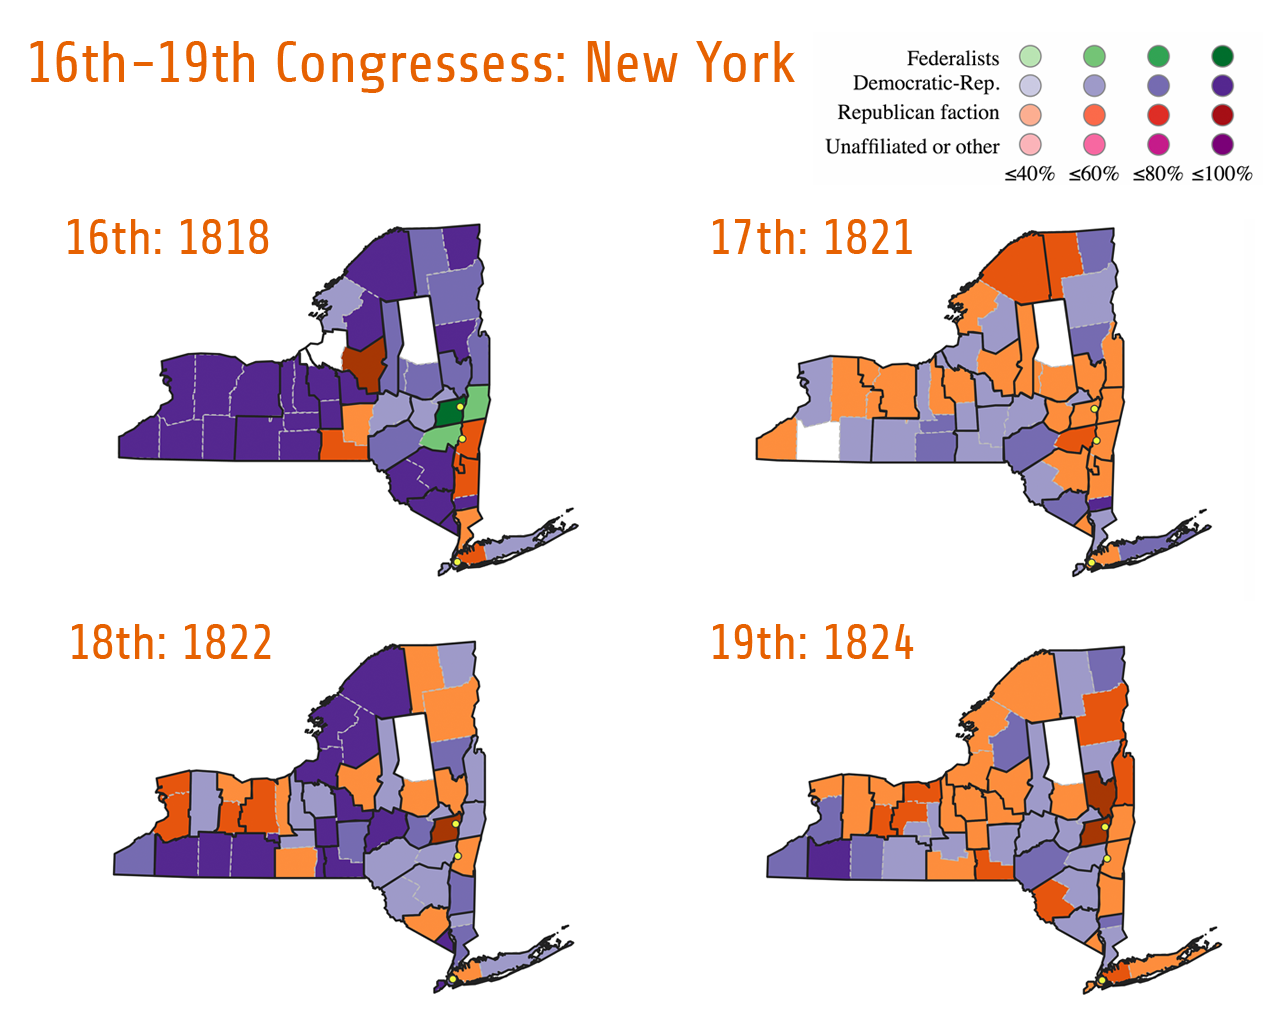 After becoming the dominant political force in New York in the early 1800s, the Democratic-Republicans (purple) splintered into several competing factions (orange/brown), each centered around a strong leader, and was sustained by fierce party loyalty and patronage. These maps for New York's elections to the Sixteenth, Seventeenth, Eighteenth and Nineteenth congresses demonstrate the growing support for these various factions, such as the Bucktails, Clintonians, and Quids.